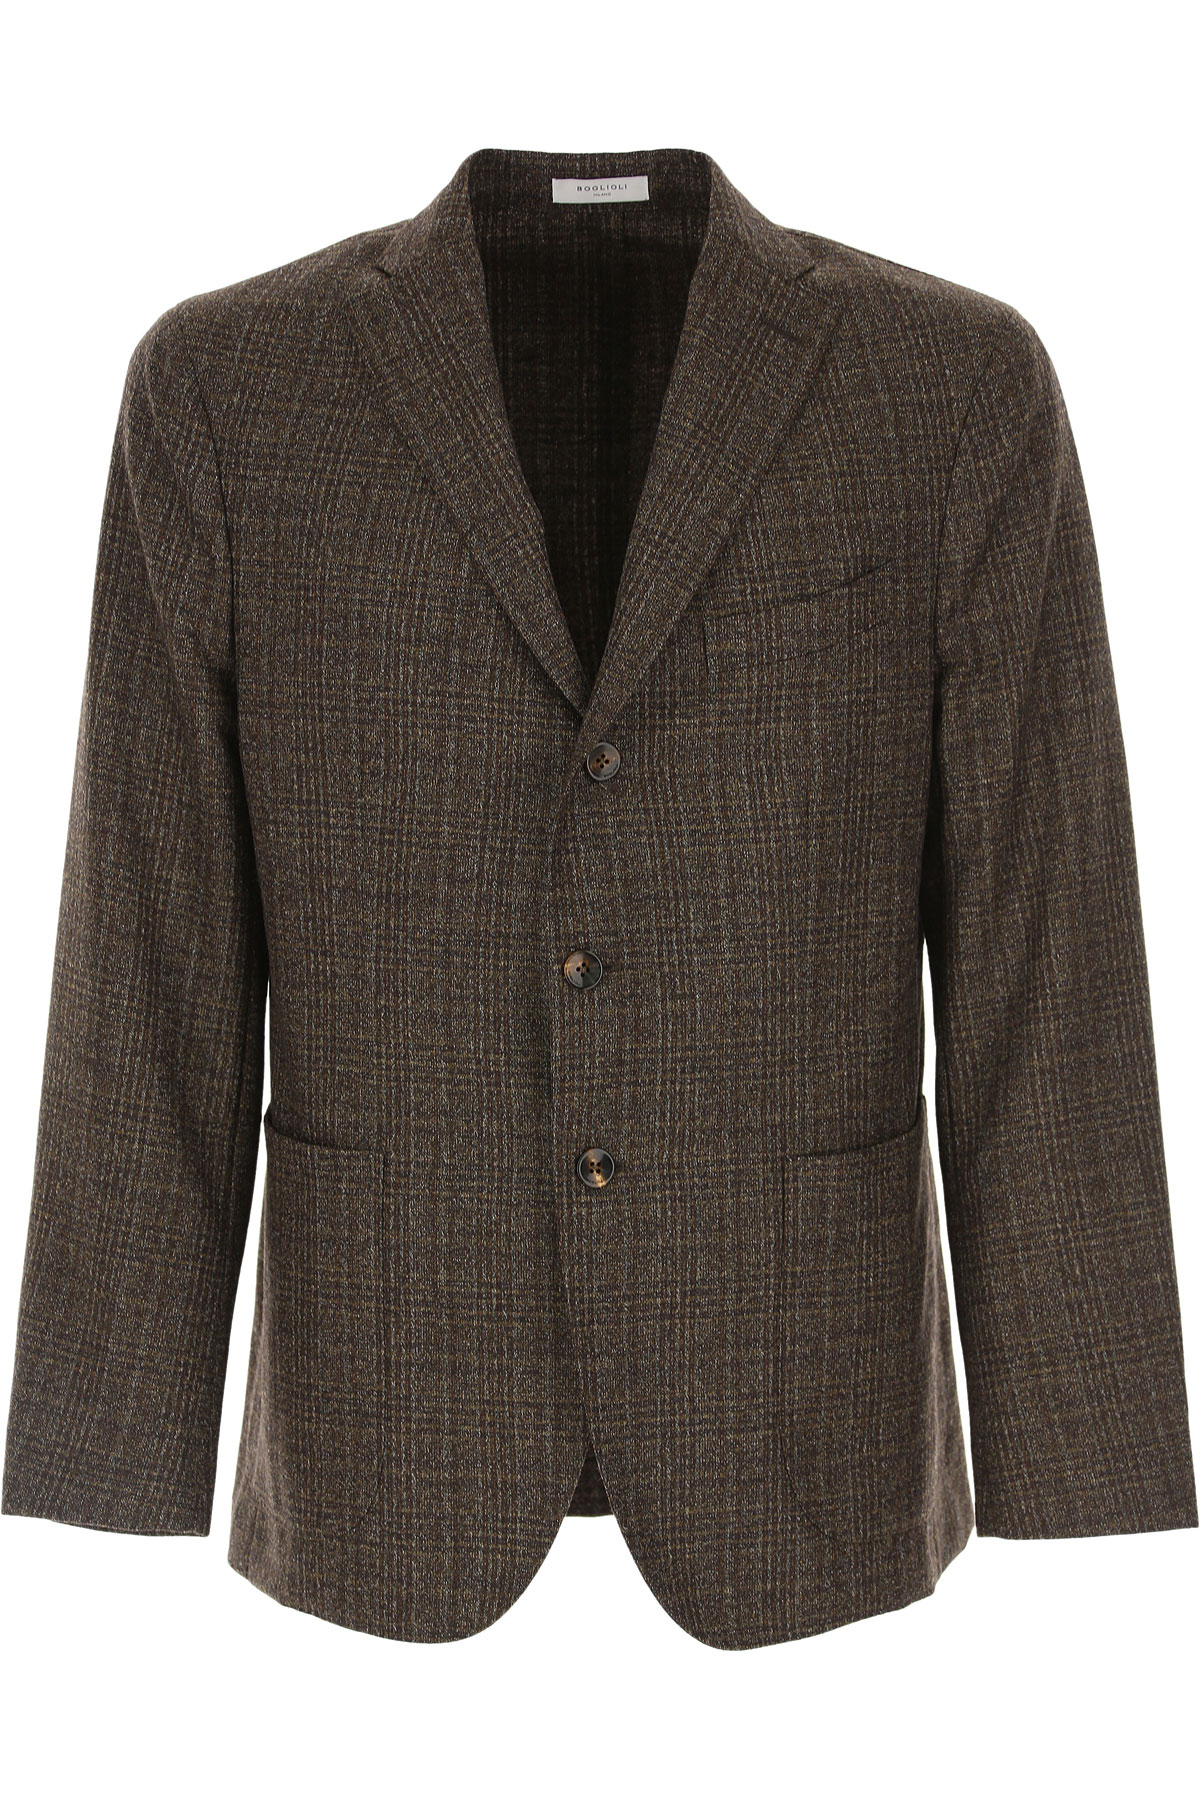 Boglioli Blazer for Men, Sport Coat On Sale, Brownish-grey, Virgin wool, 2019, L M XL XXL XXXL